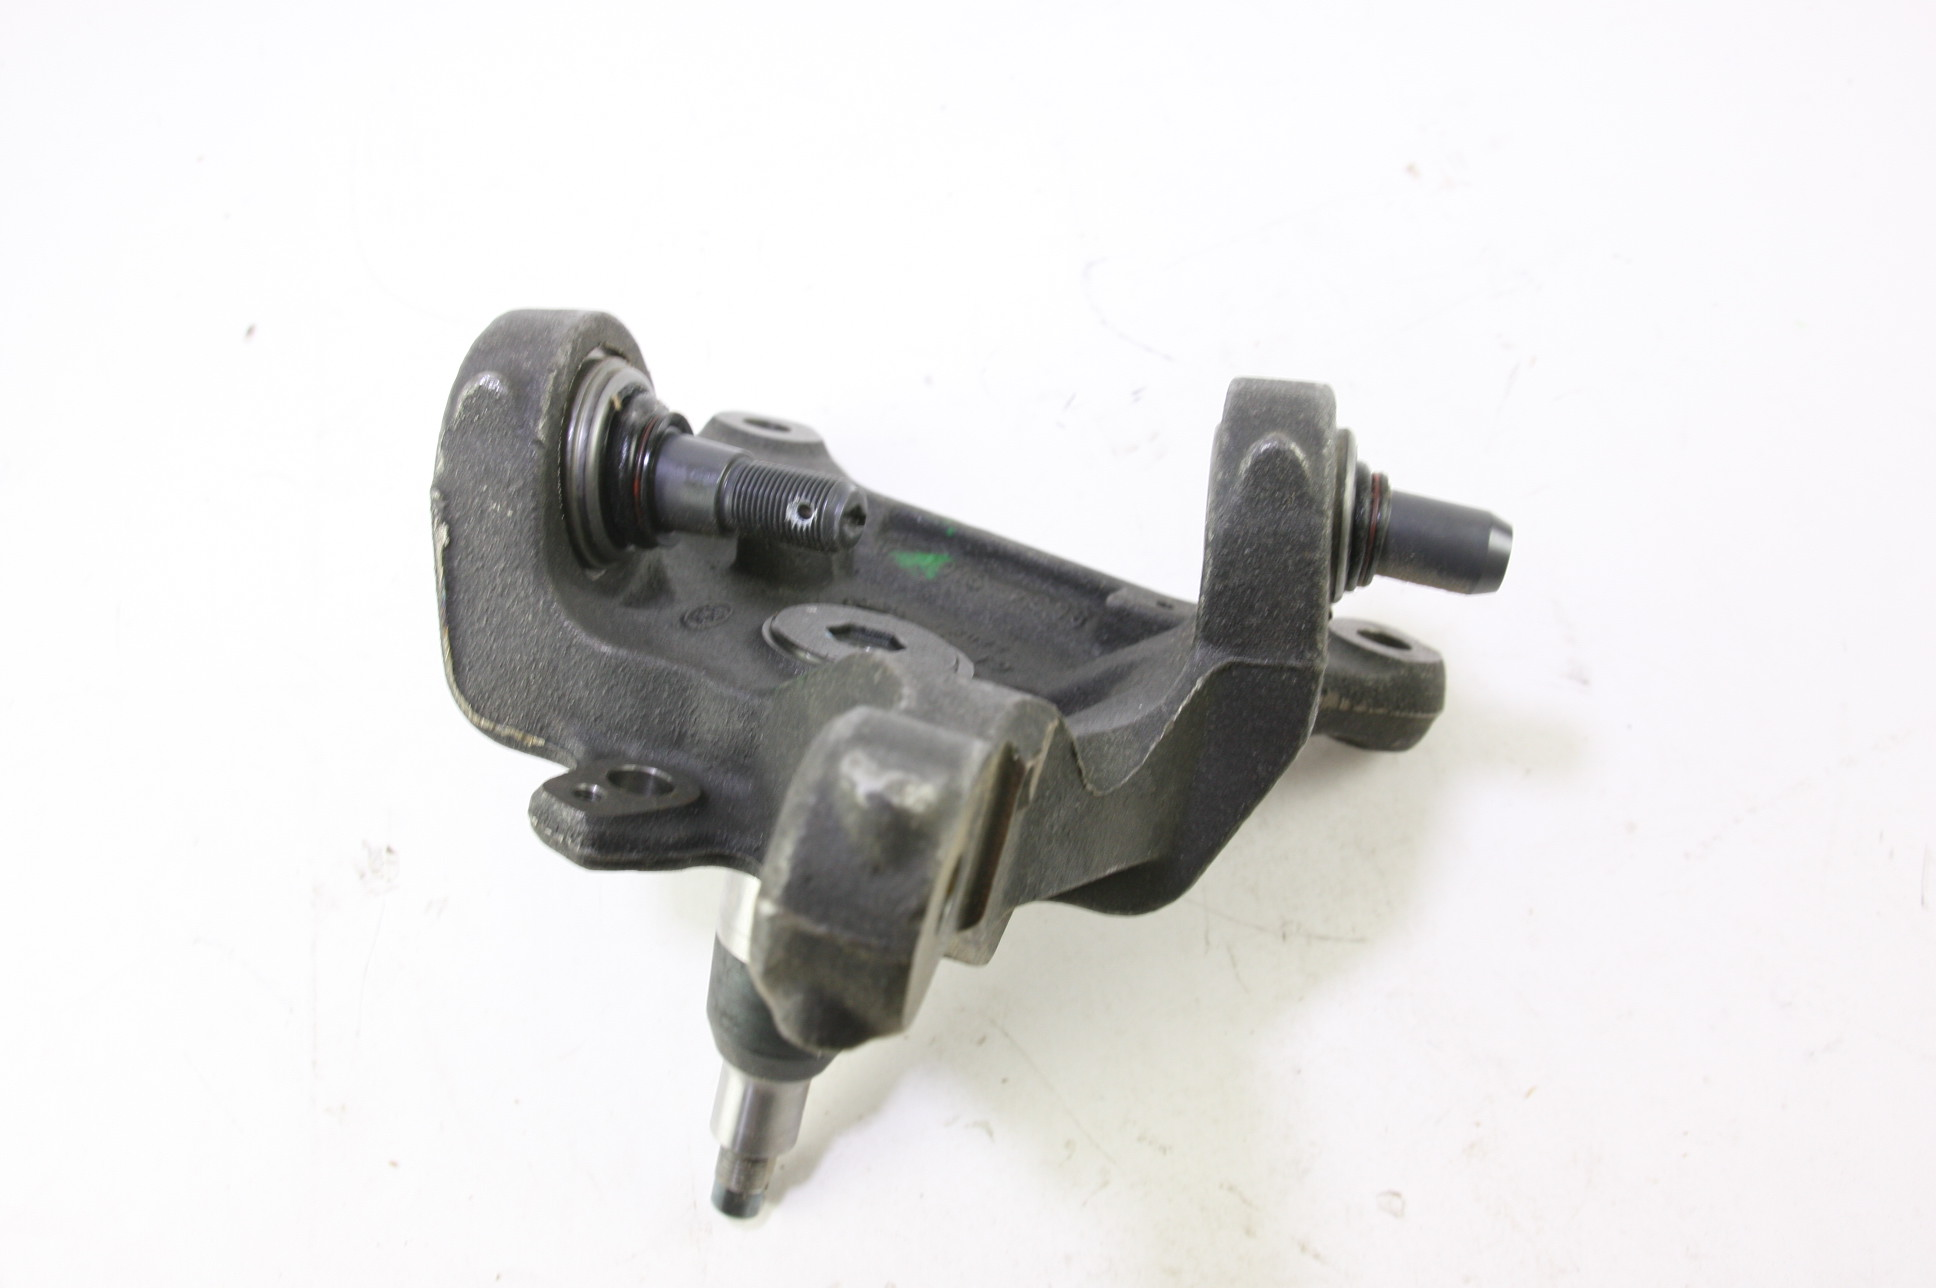 *New OEM 6C3Z3106B Ford 05-07 F-350 Super Duty Front Steering Knuckle Spindle - image 8